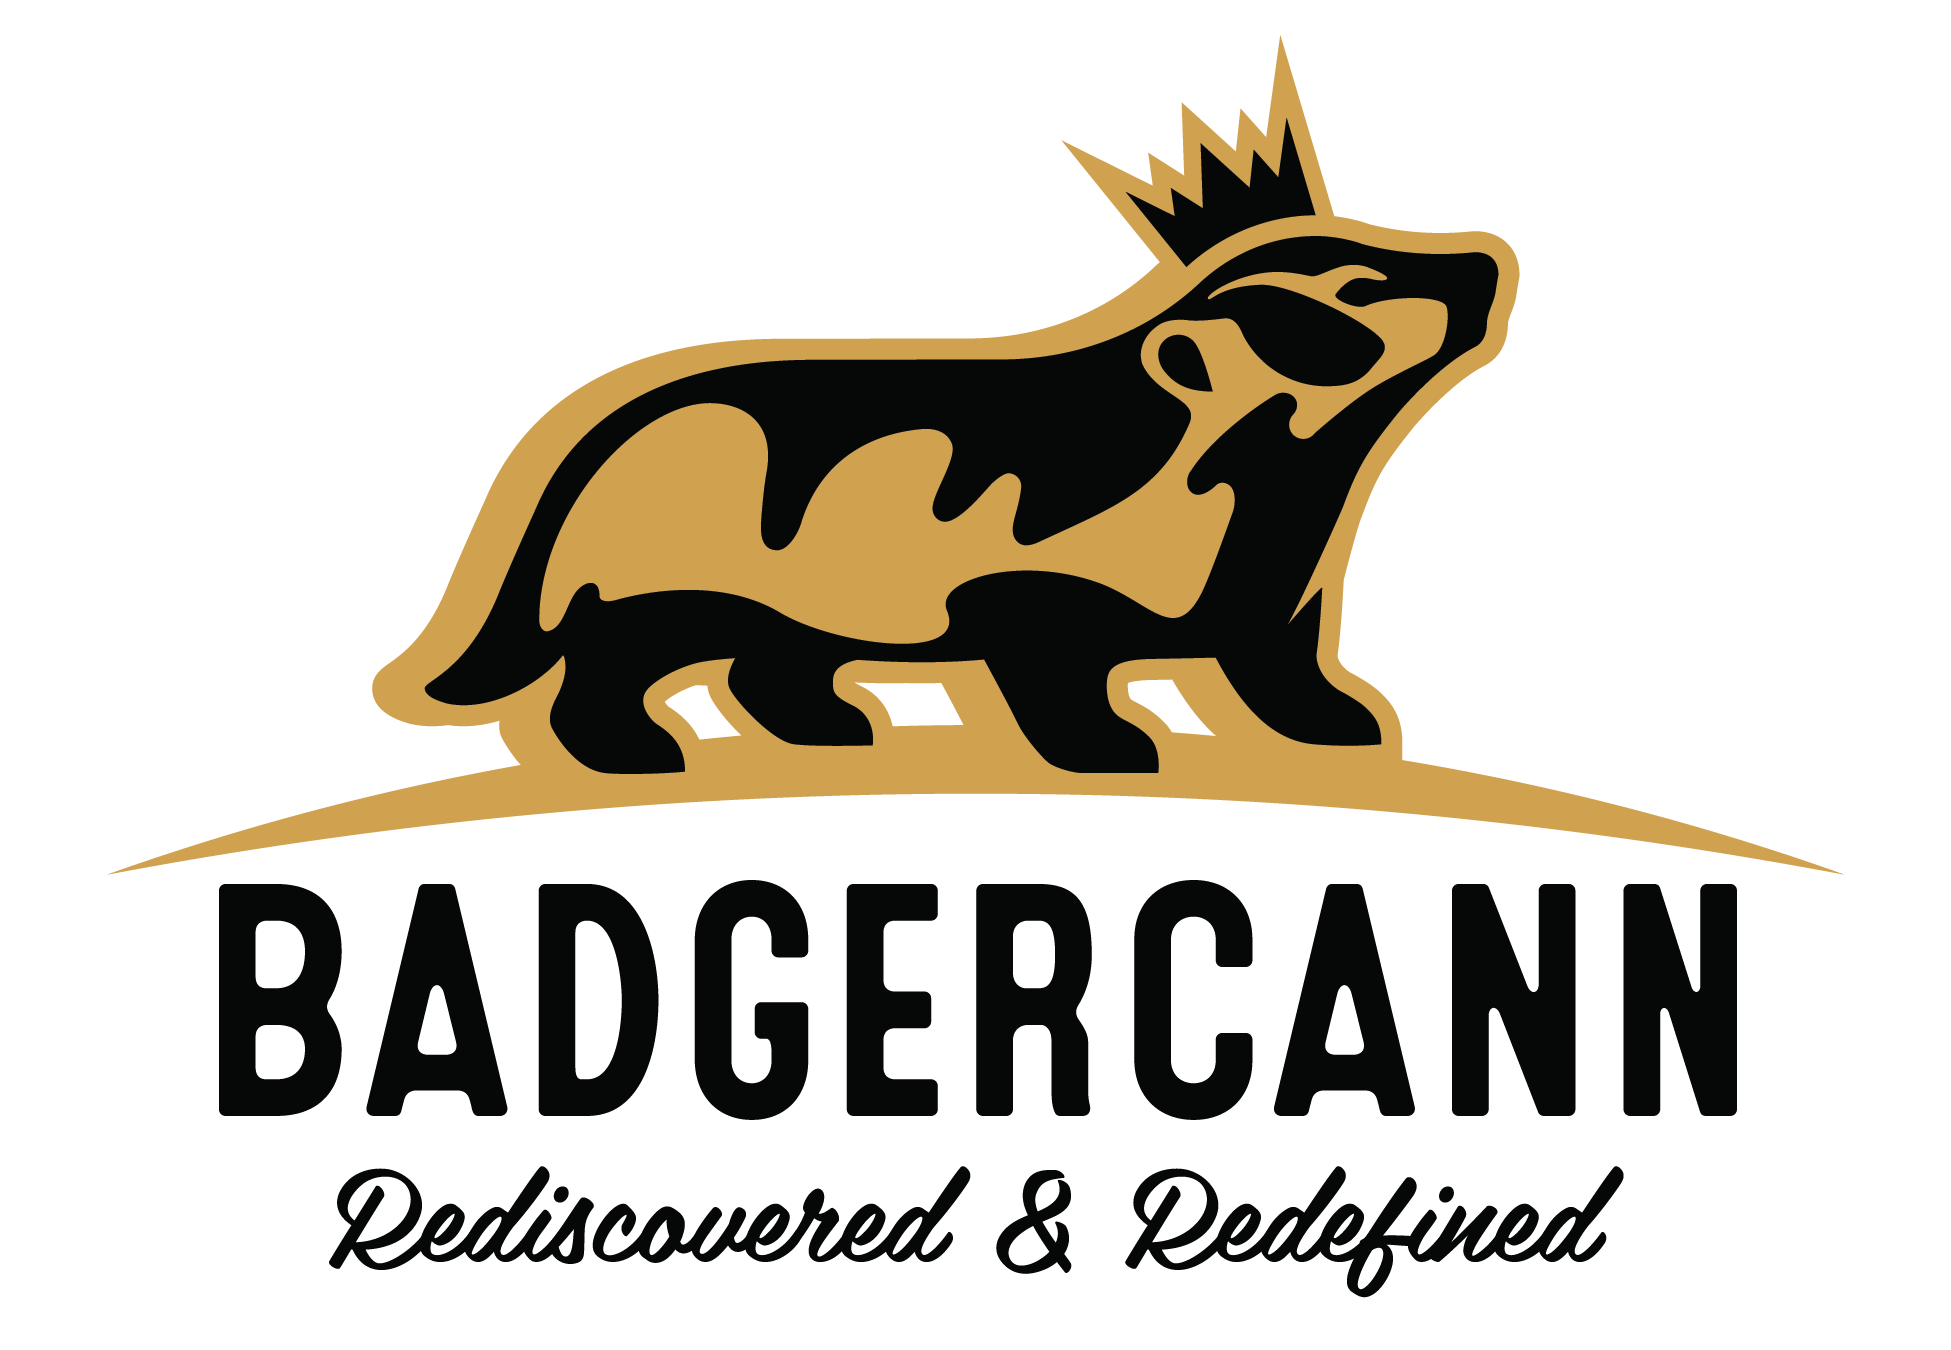 Badgercann is now offered Nationwide Through Mr. Checkout's Direct Store Delivery Distributors